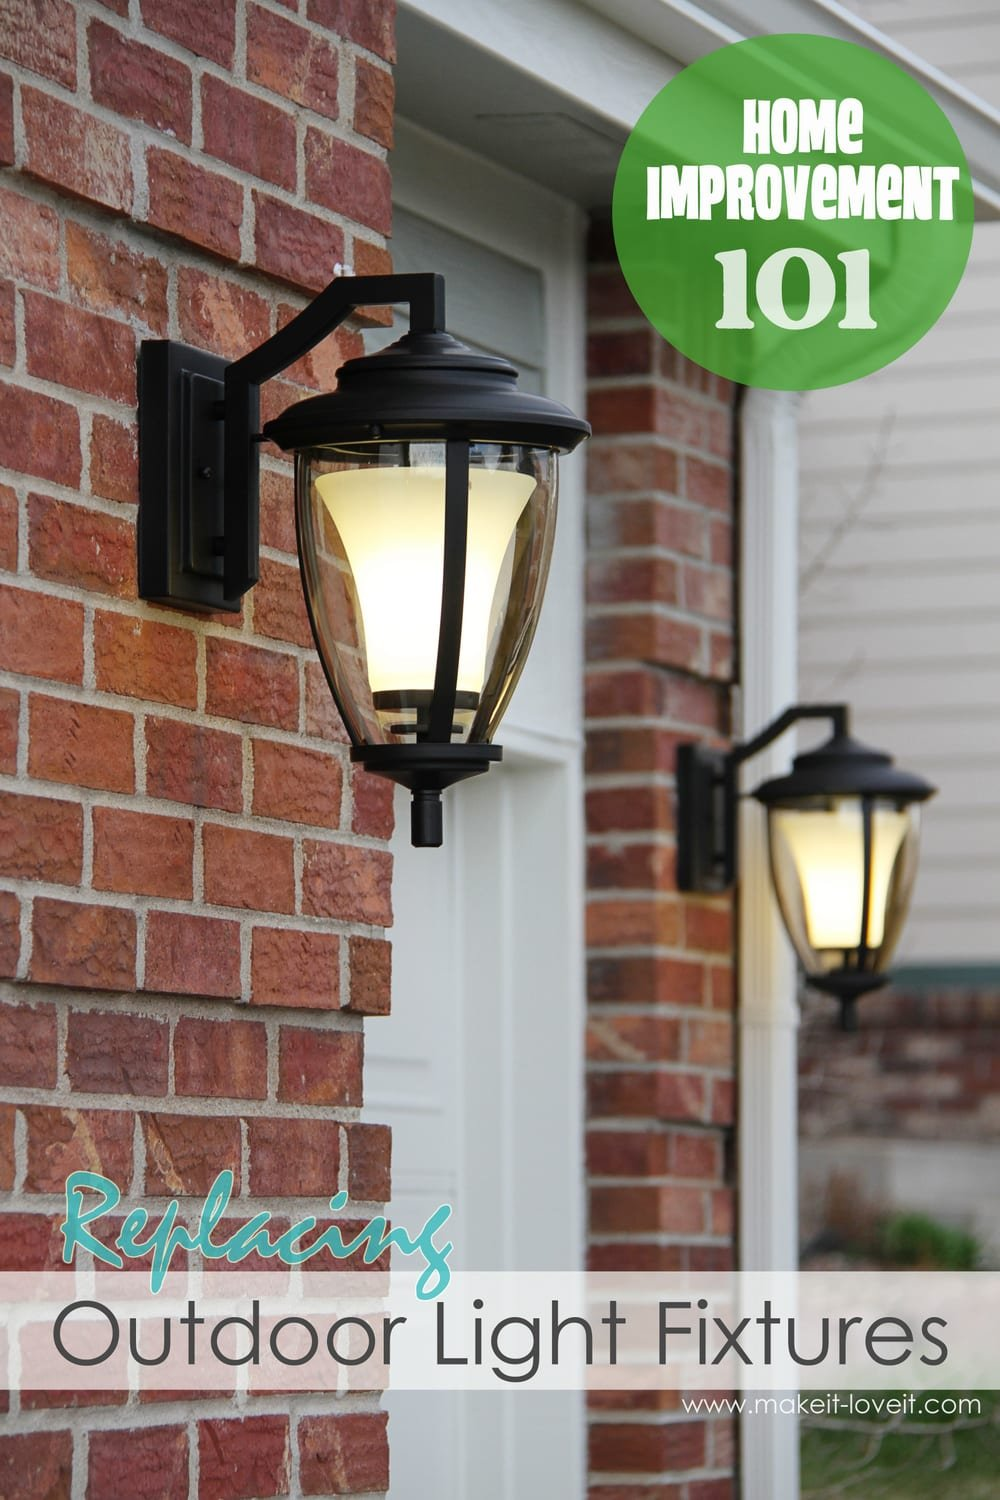 Home improvement replacing outdoor light fixtures dont be home improvement replacing outdoor light fixtures dont be scared make it and love it mozeypictures Image collections